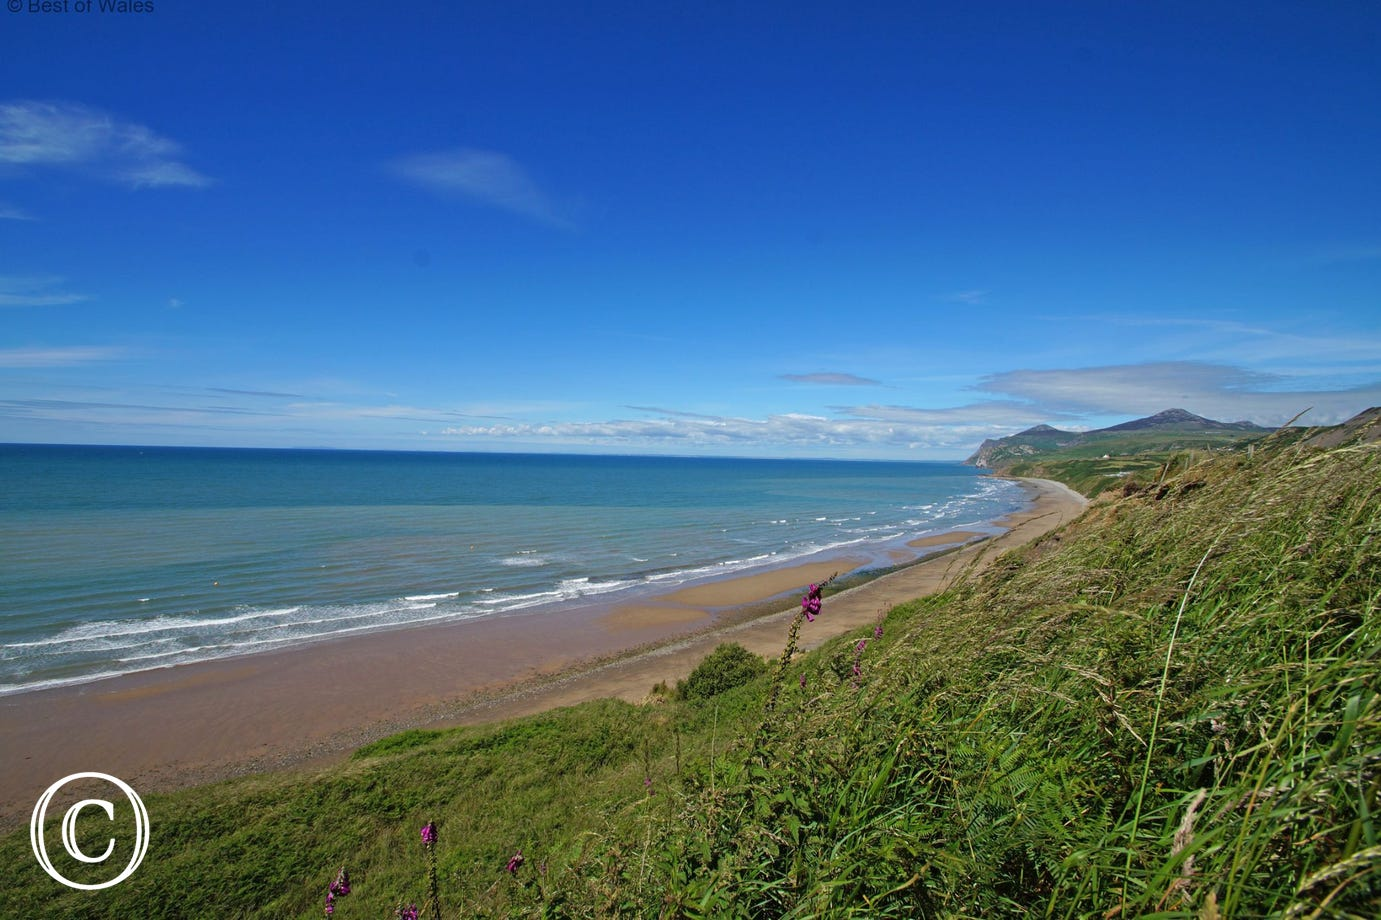 Porth Nefyn beach - accessed via a footpath just across the road (0.4 mile)